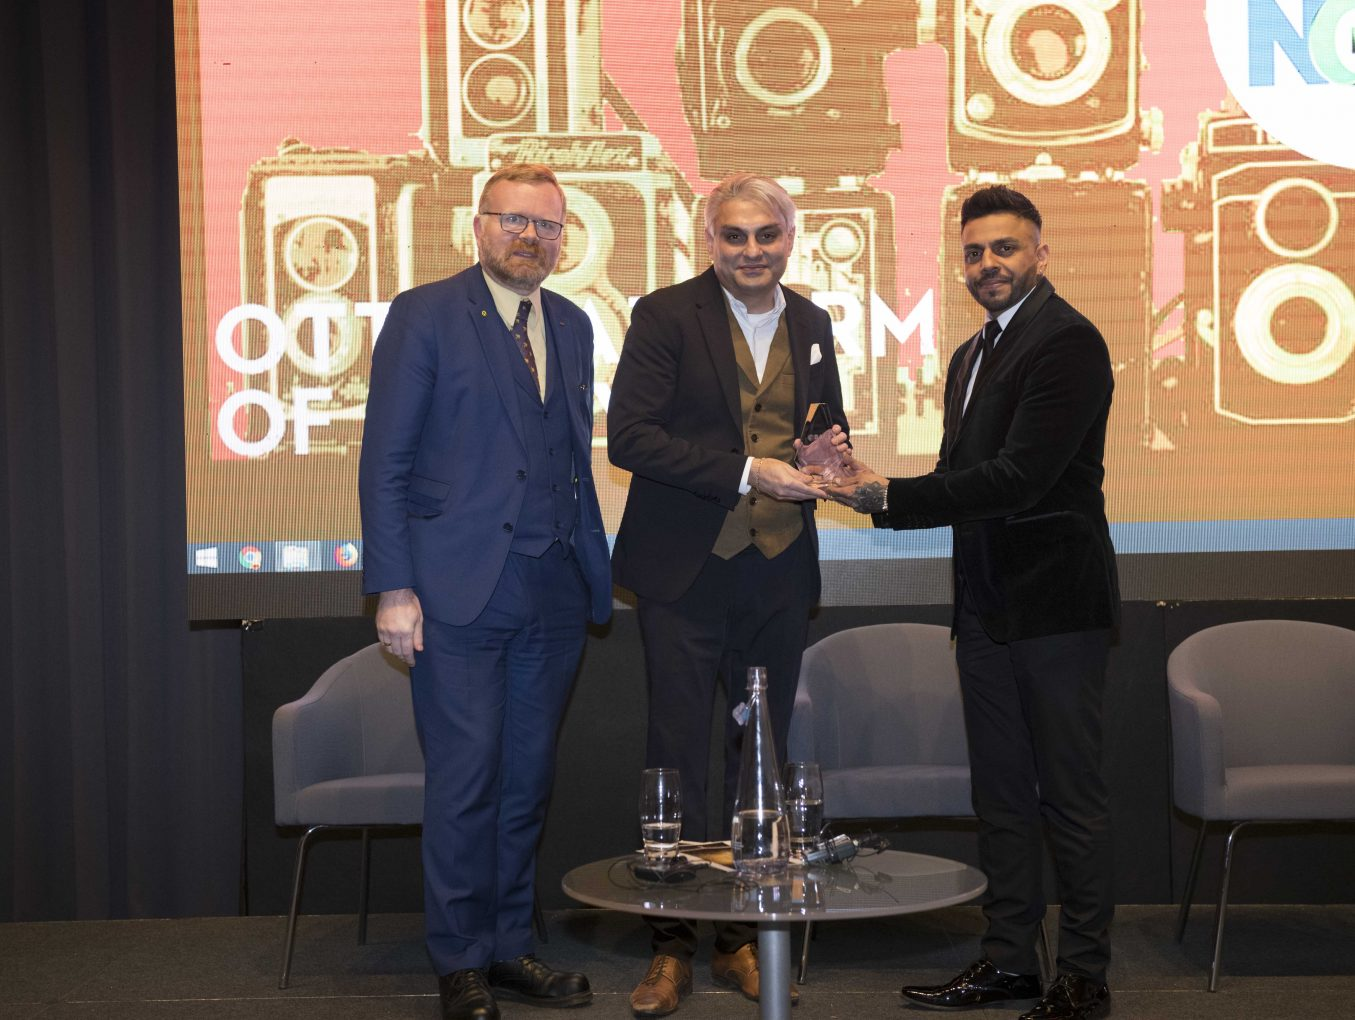 Spread the Joy with Tolly Boy wins the Charity / Community Campaign of the Year 2018 at the British Asian Media Awards